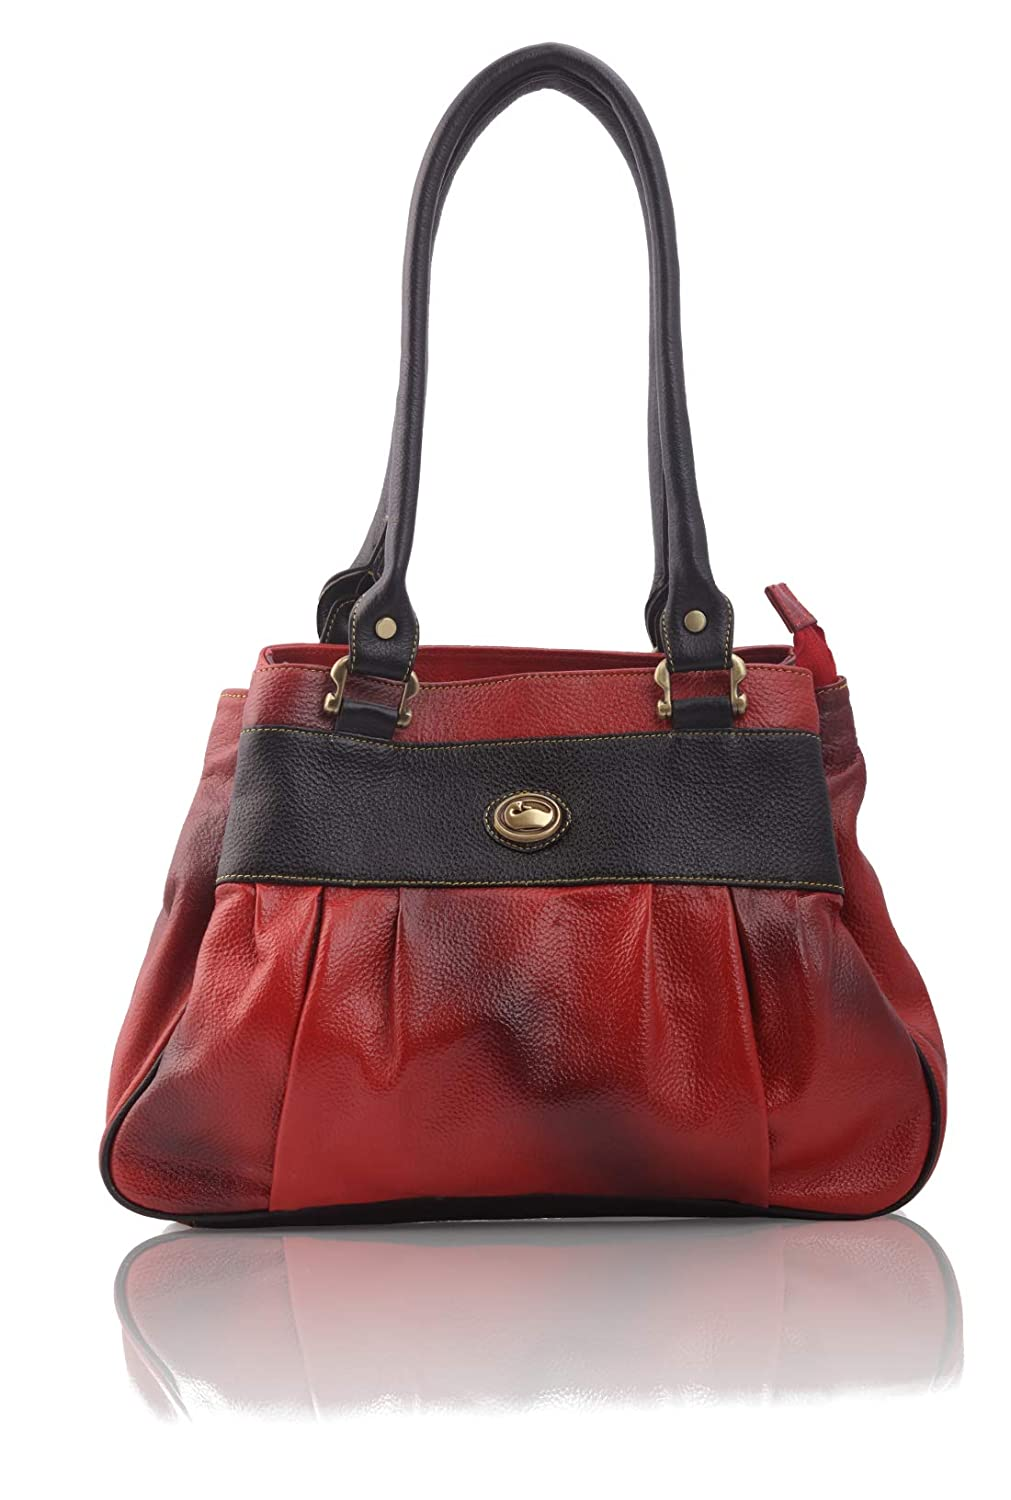 GenWayne stylish leather handbags for women cum shoulderbag (pure leather  bag) (Red)  Amazon.in  Shoes   Handbags